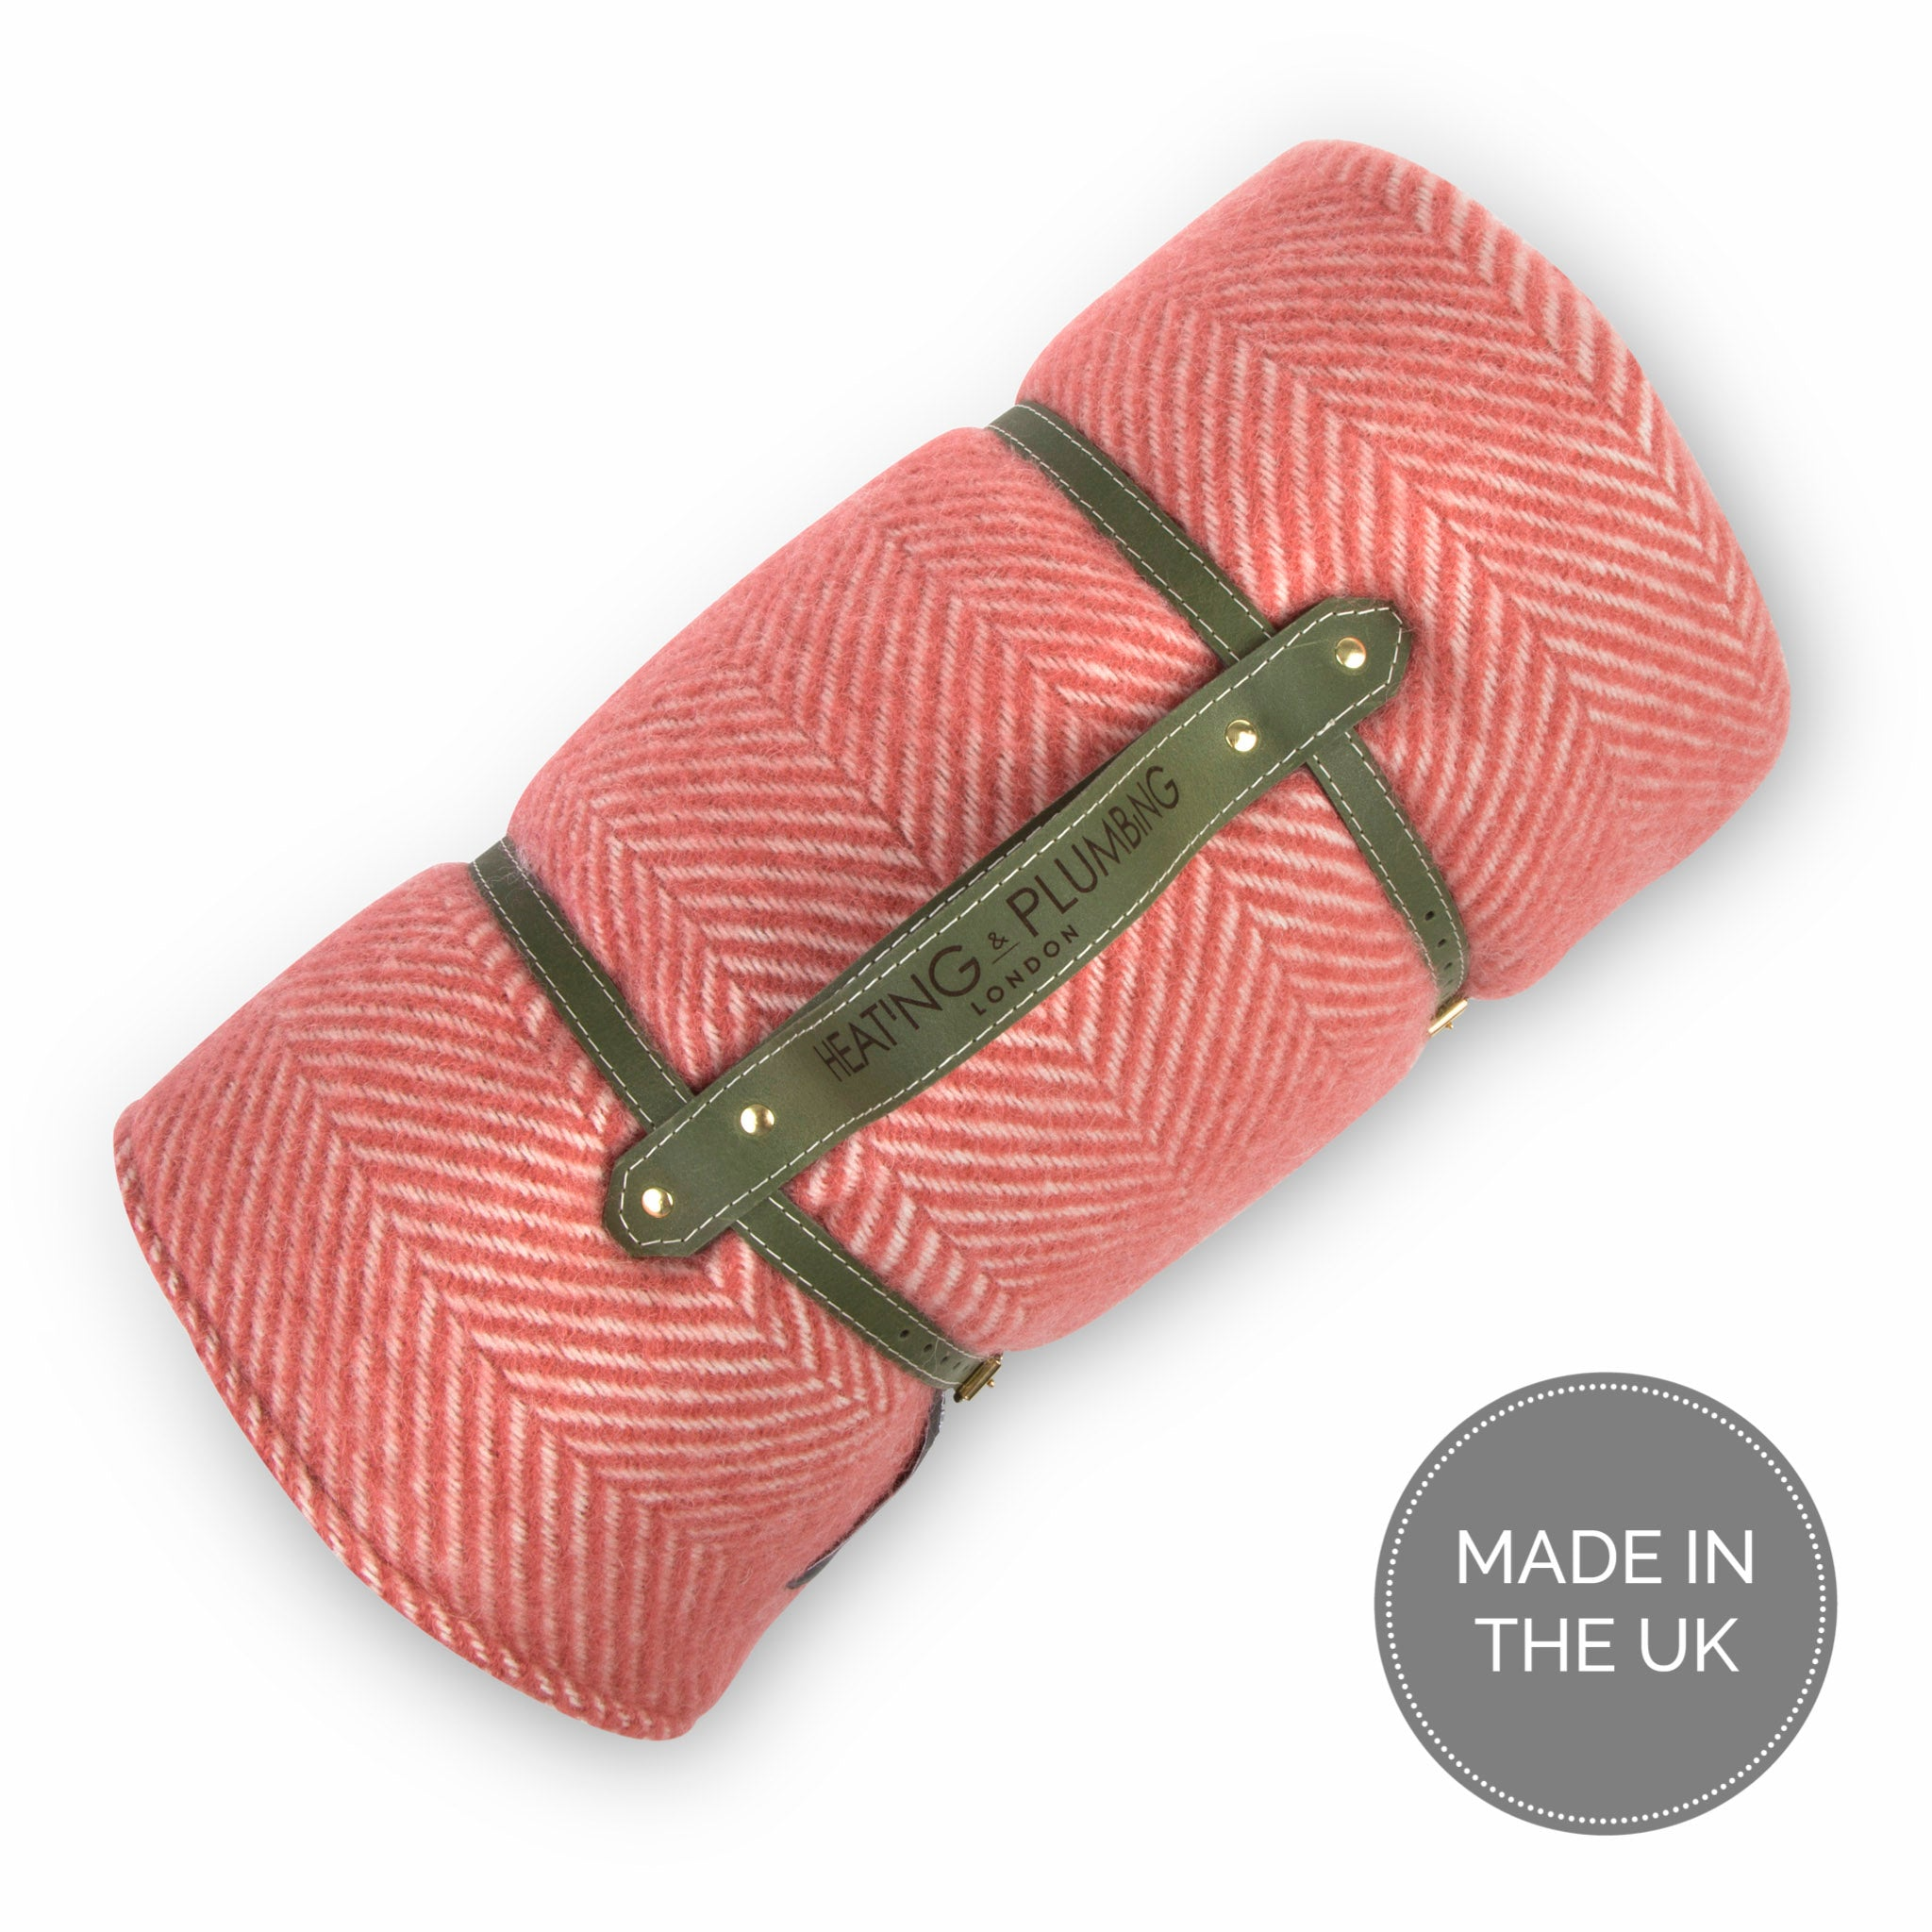 Pure new wool picnic blanket - Soft Cranberry Red